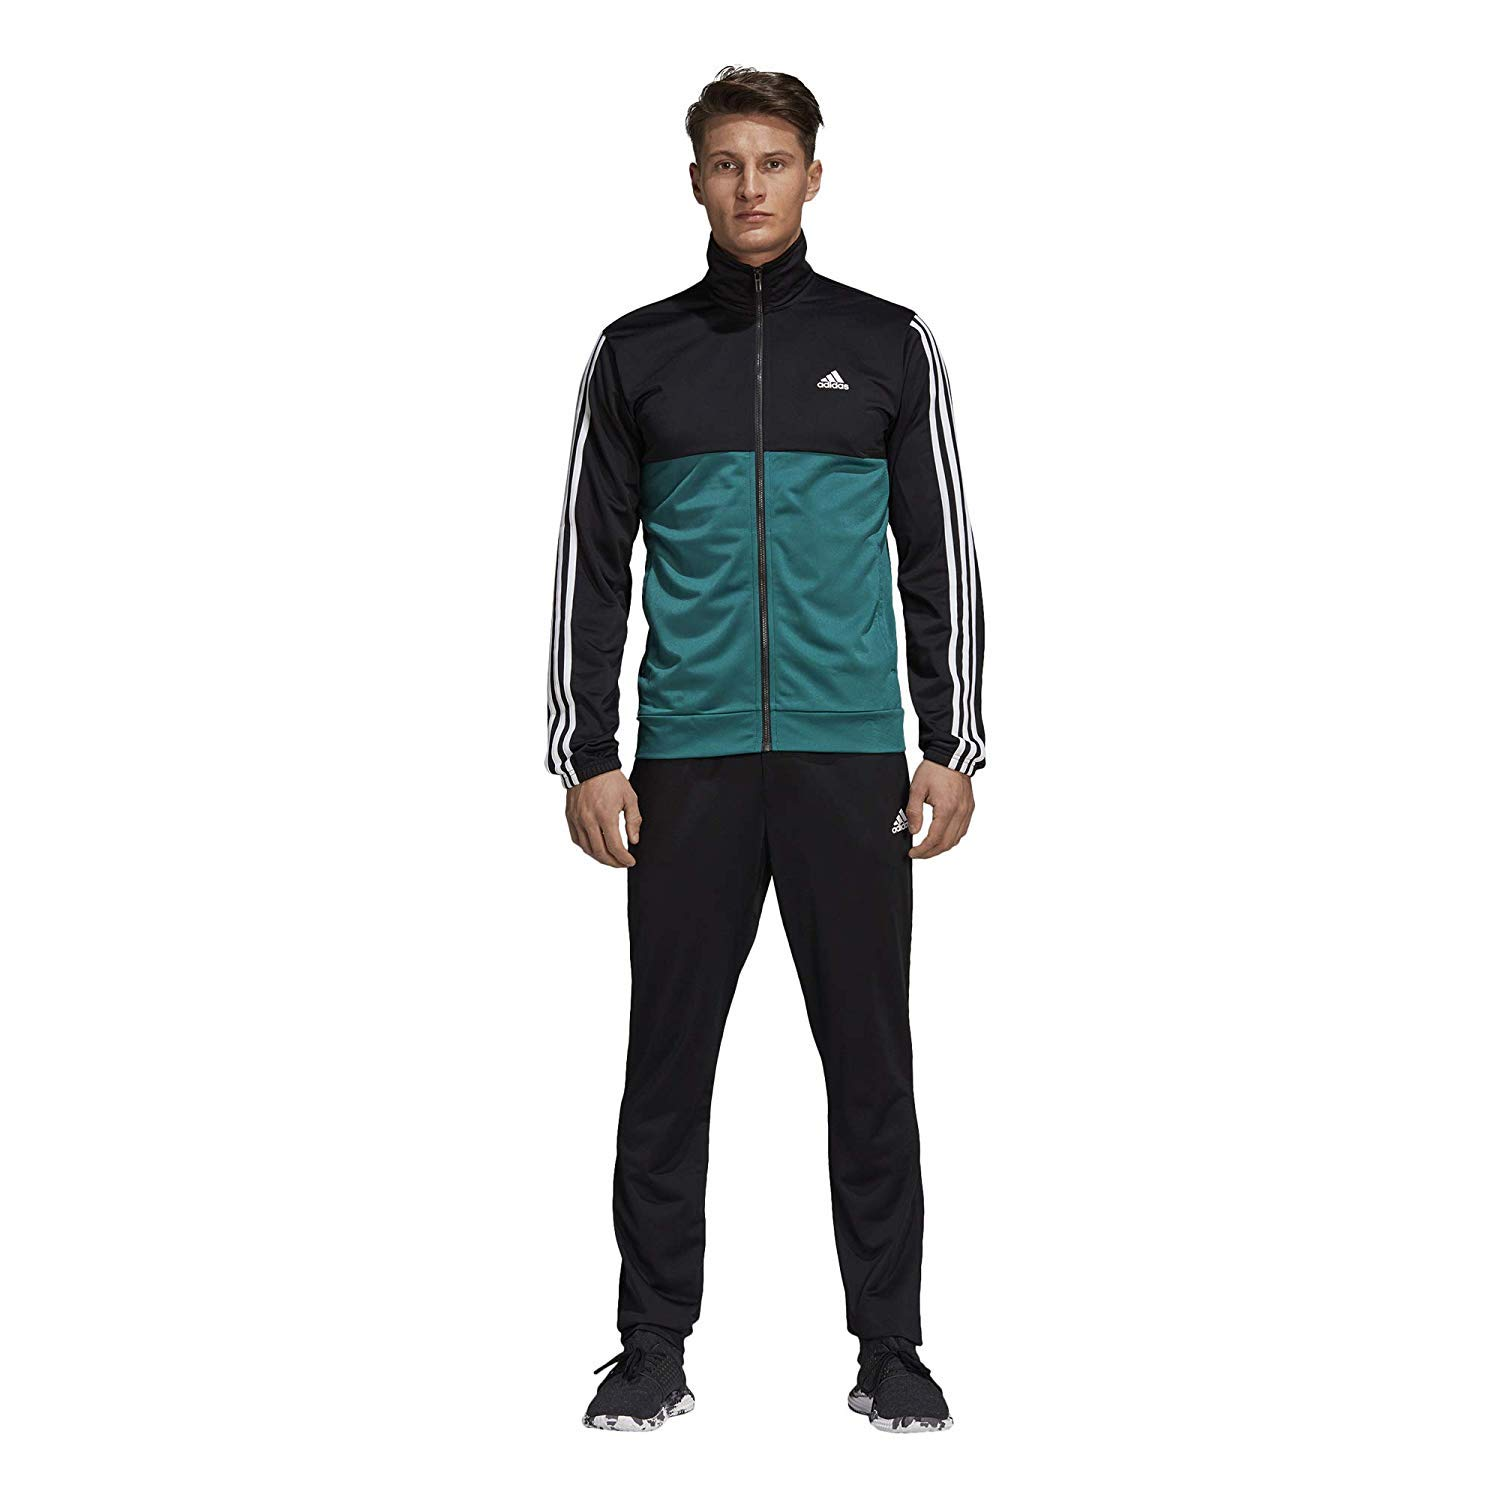 on sale bbc9b c656d Amazon.com  adidas Men Track Suit Back 2 Basics Running 3-Stripes Gym  Training CY2303 New (4 - UK 36 38 - Small)  Clothing